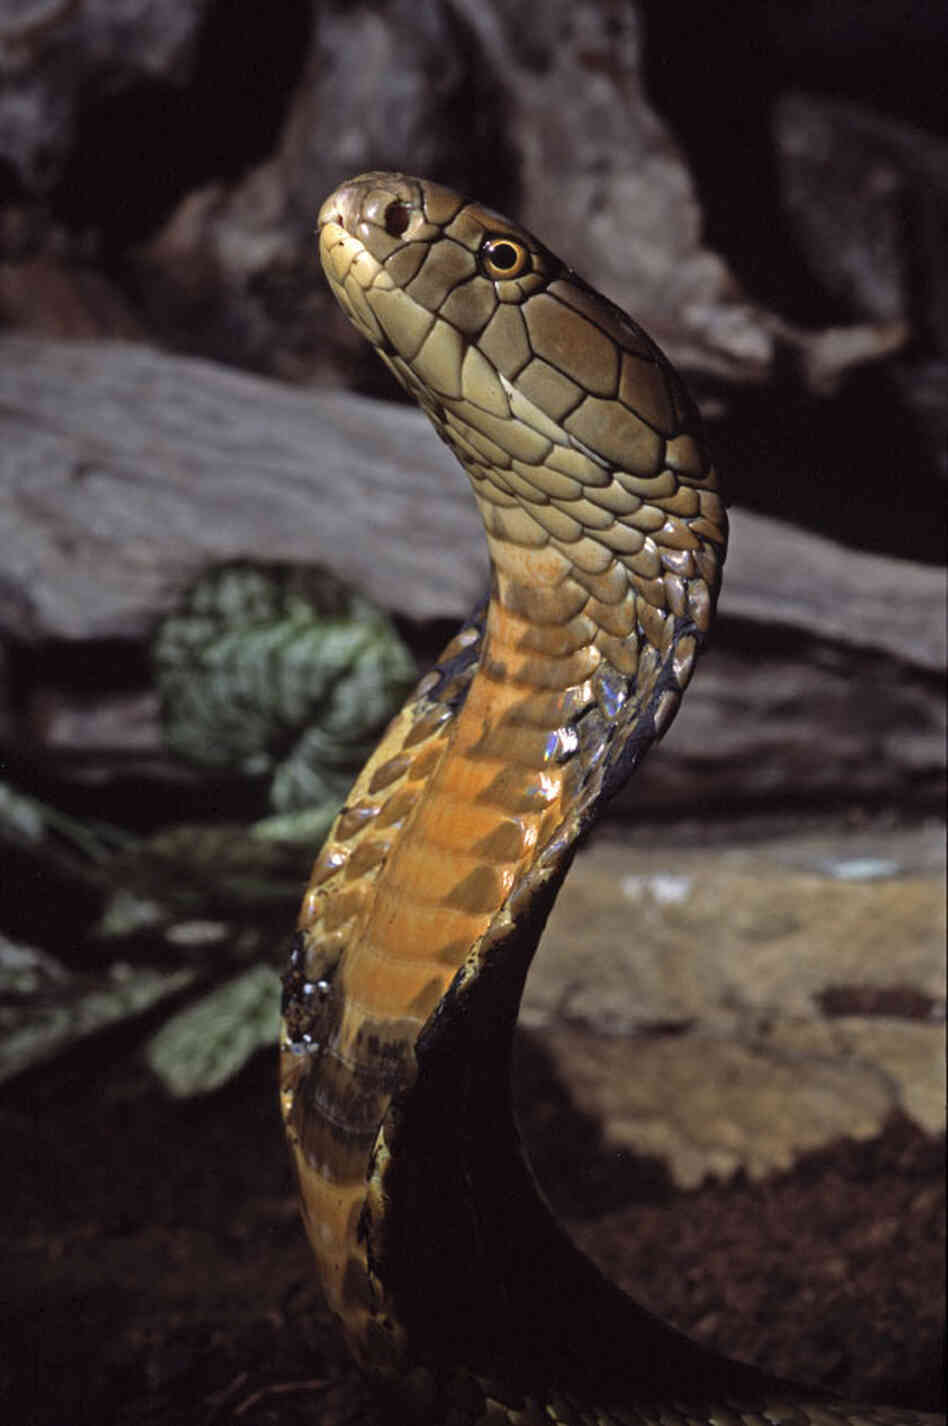 The king cobra. iStockphoto.com